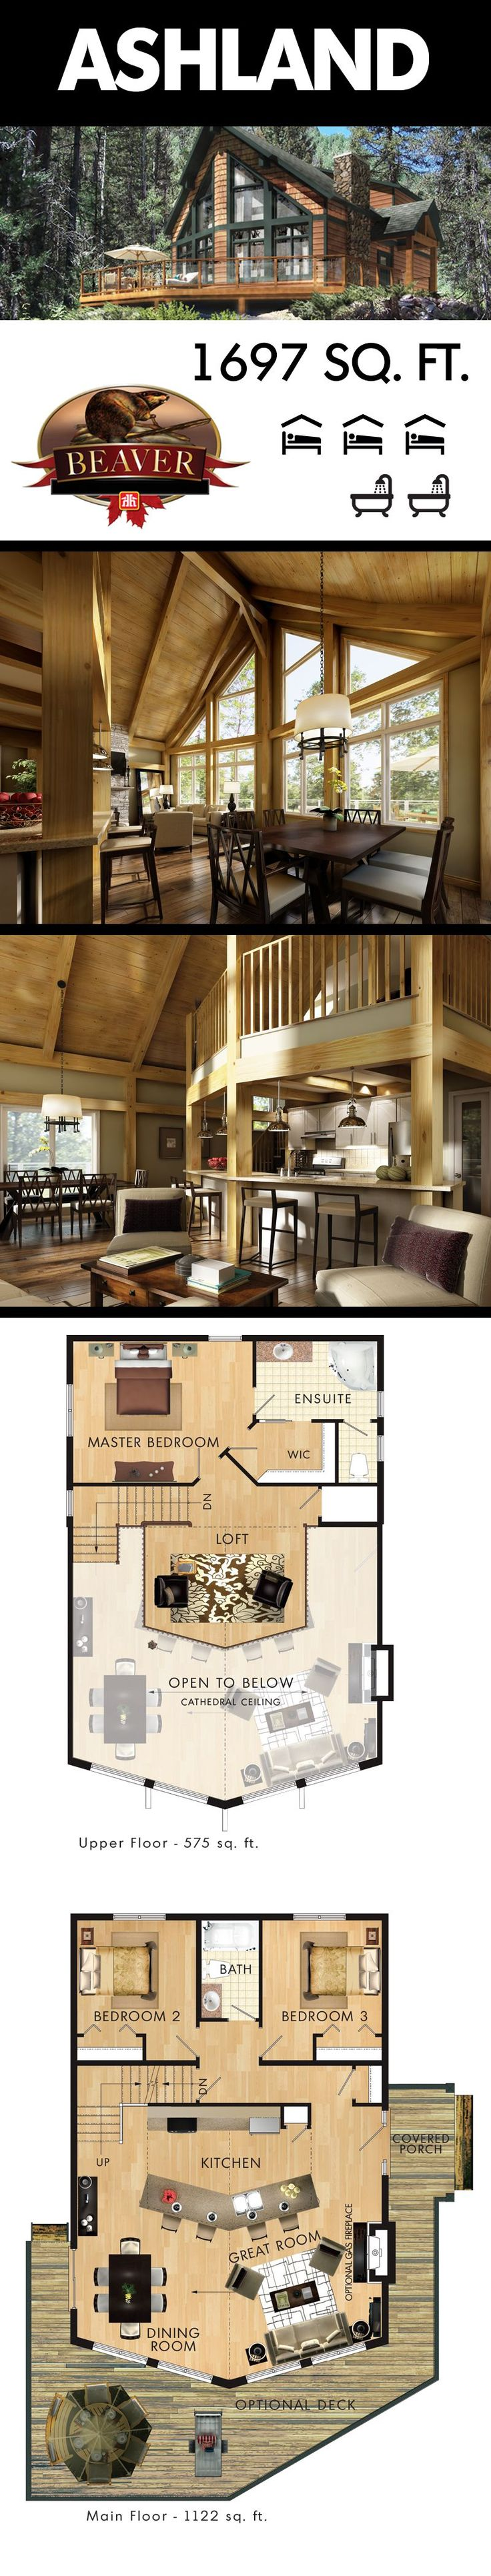 25 best loft floor plans ideas on pinterest lofted bedroom the ashland boasts a rugged elegance it is exactly what you would imagine a